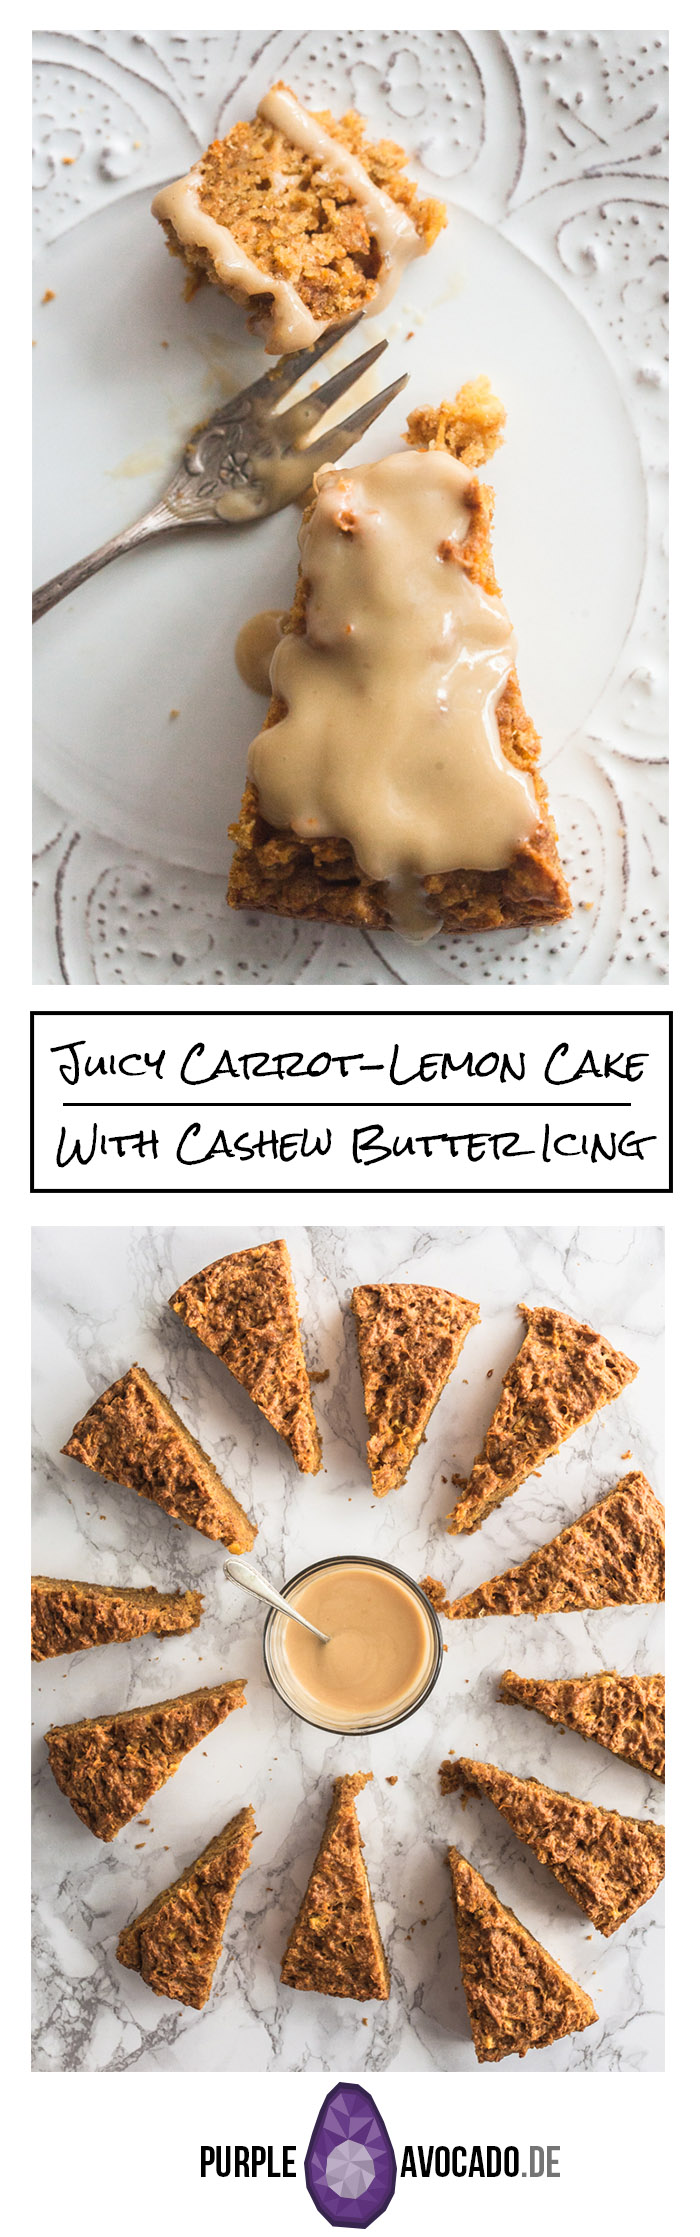 Here's a recipe for a soft and tender vegan Carrot Lemon Cake with Cashew Butter Icing. The juicy carrot cake will stay fresh in the fridge for a couple of days. The slightly bitter, nutty cashew icing gives it a special twist, the fresh lemon juice and lemon zest add a sour and fruity note.